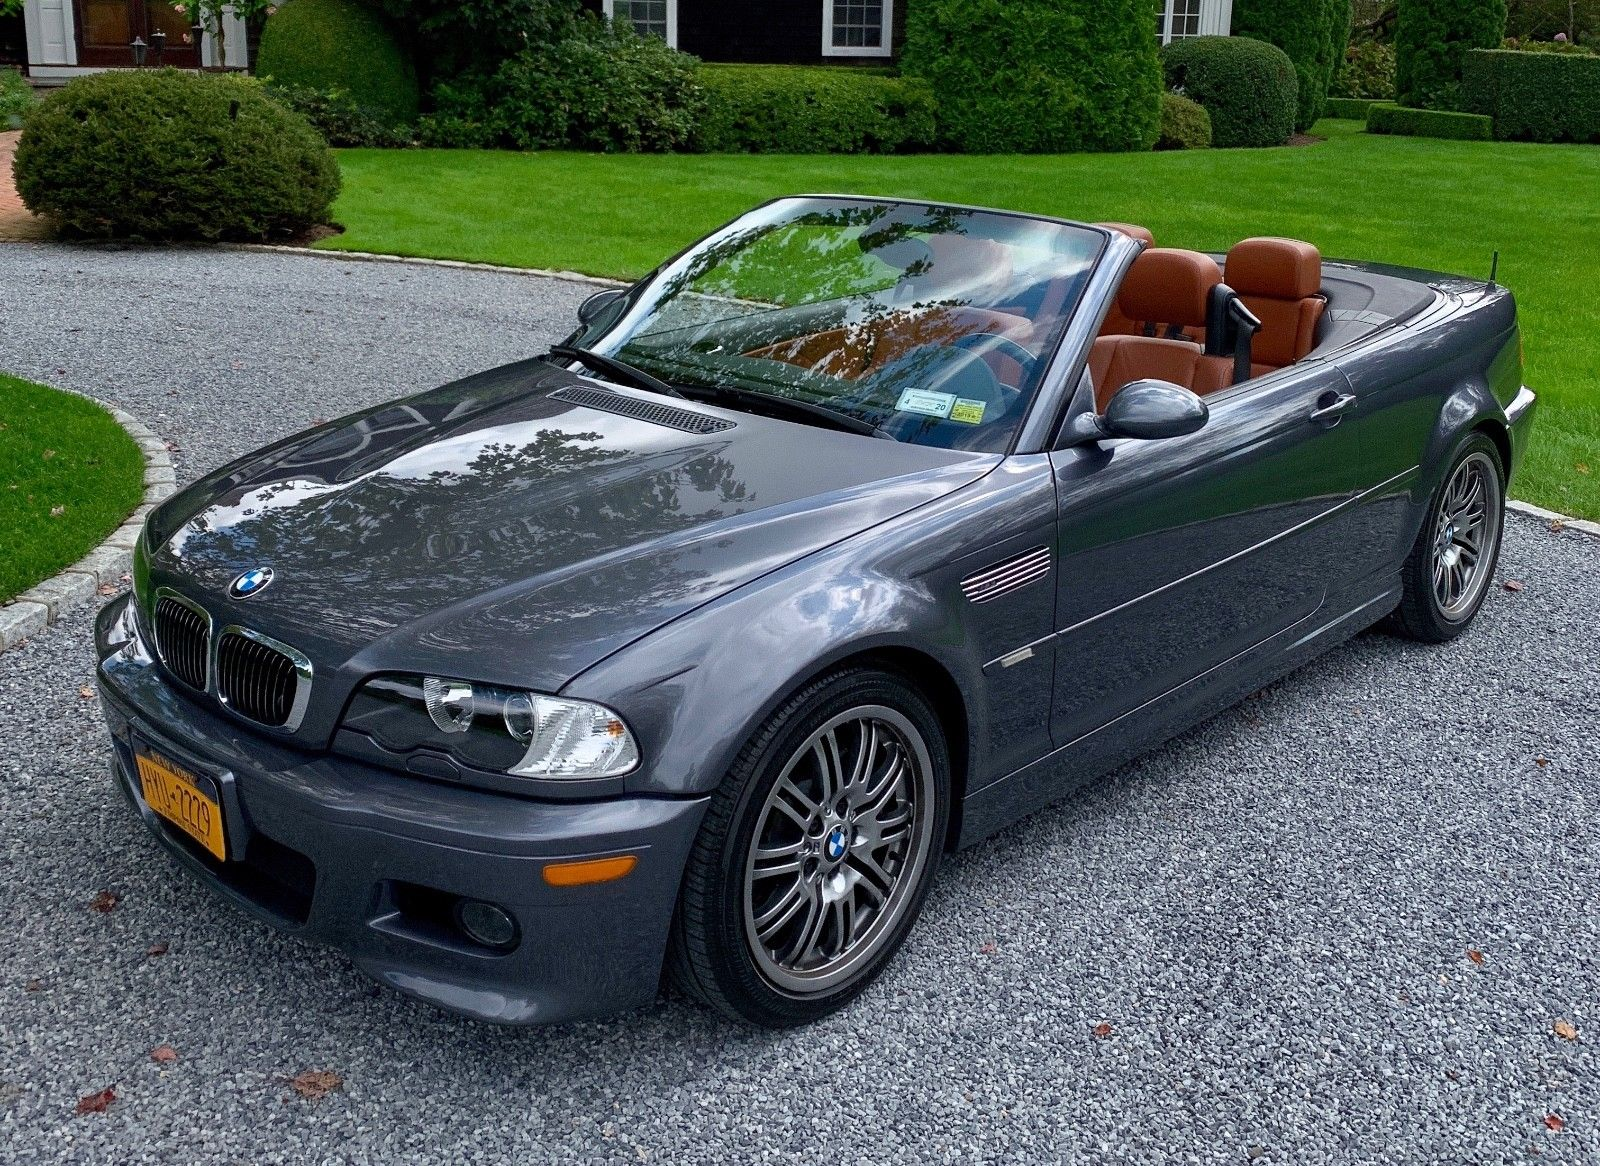 2003 Bmw M3 Convertible German Cars For Sale Blog